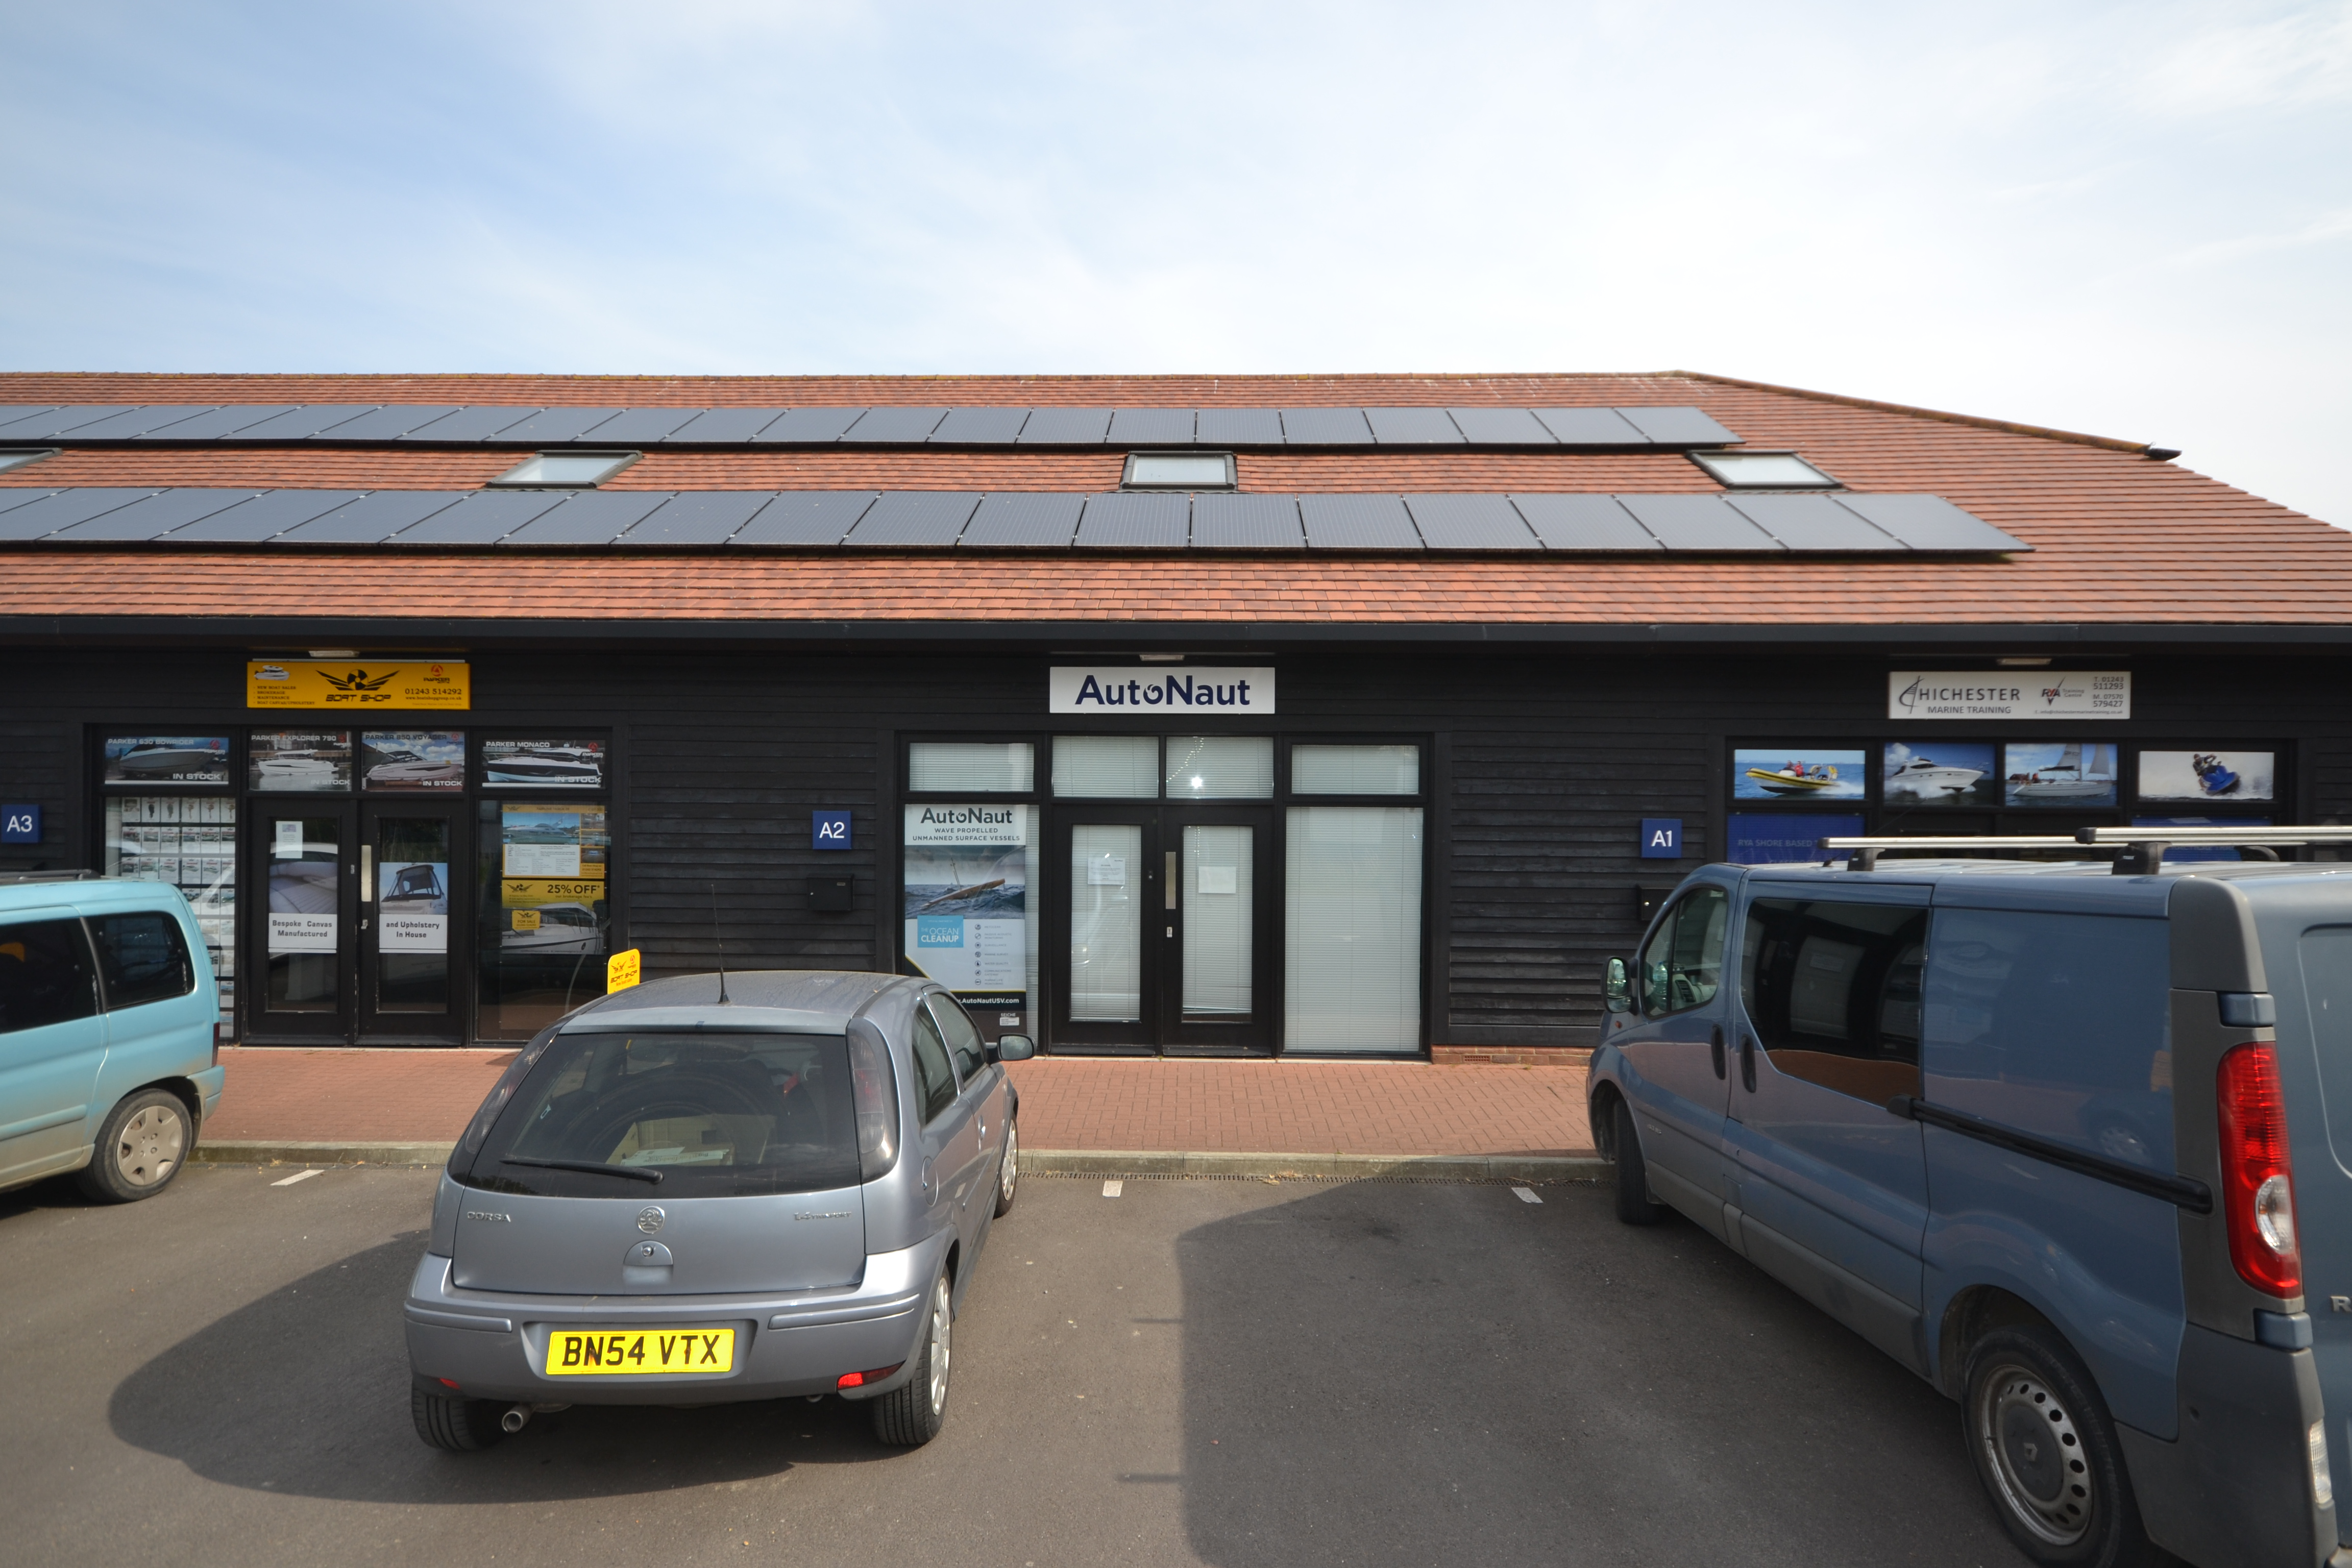 0 bed Office for rent in Chichester. From Henry Adams Commercial